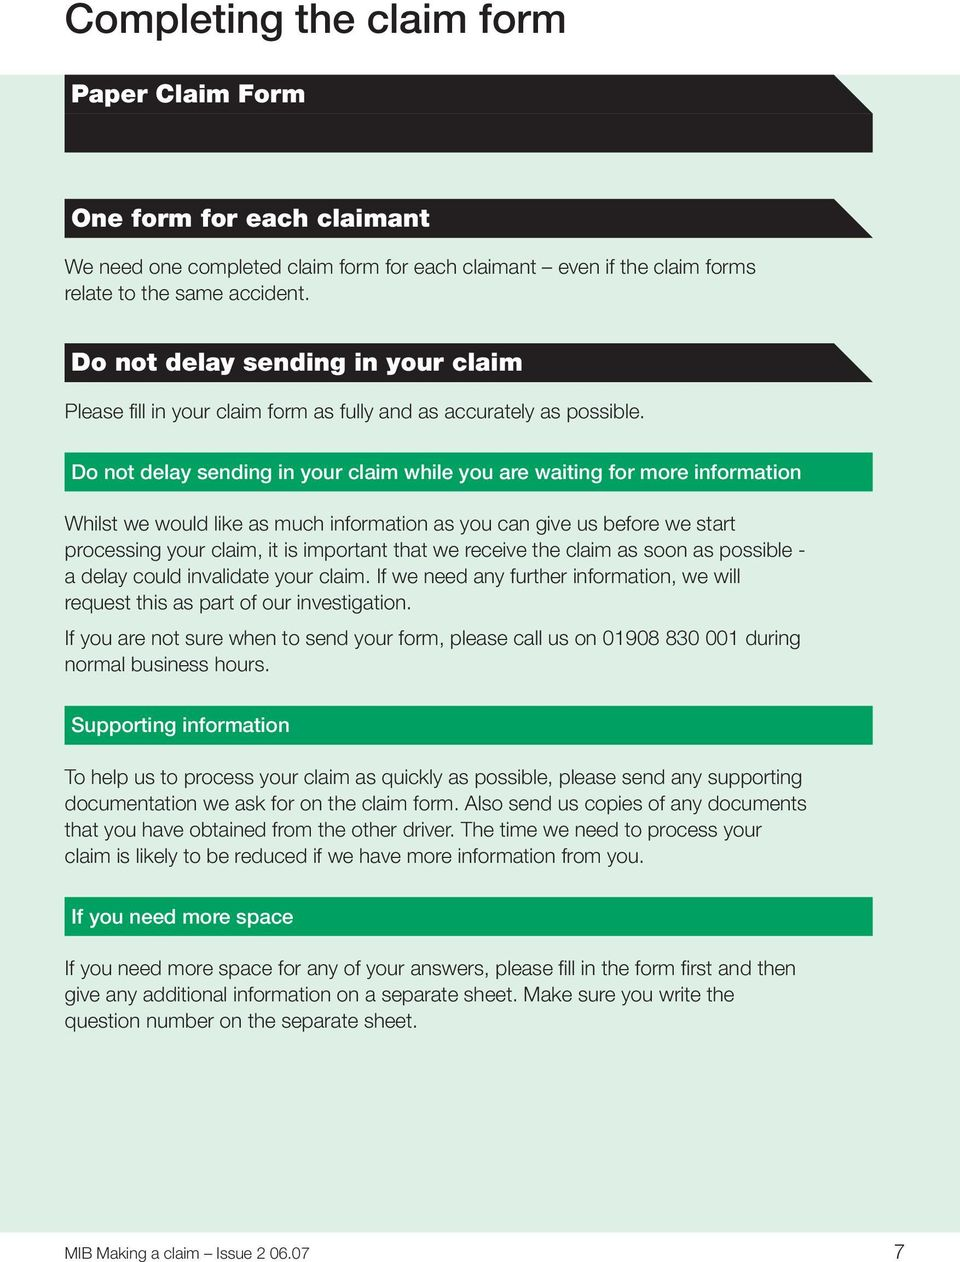 Do not delay sending in your claim while you are waiting for more information Whilst we would like as much information as you can give us before we start processing your claim, it is important that